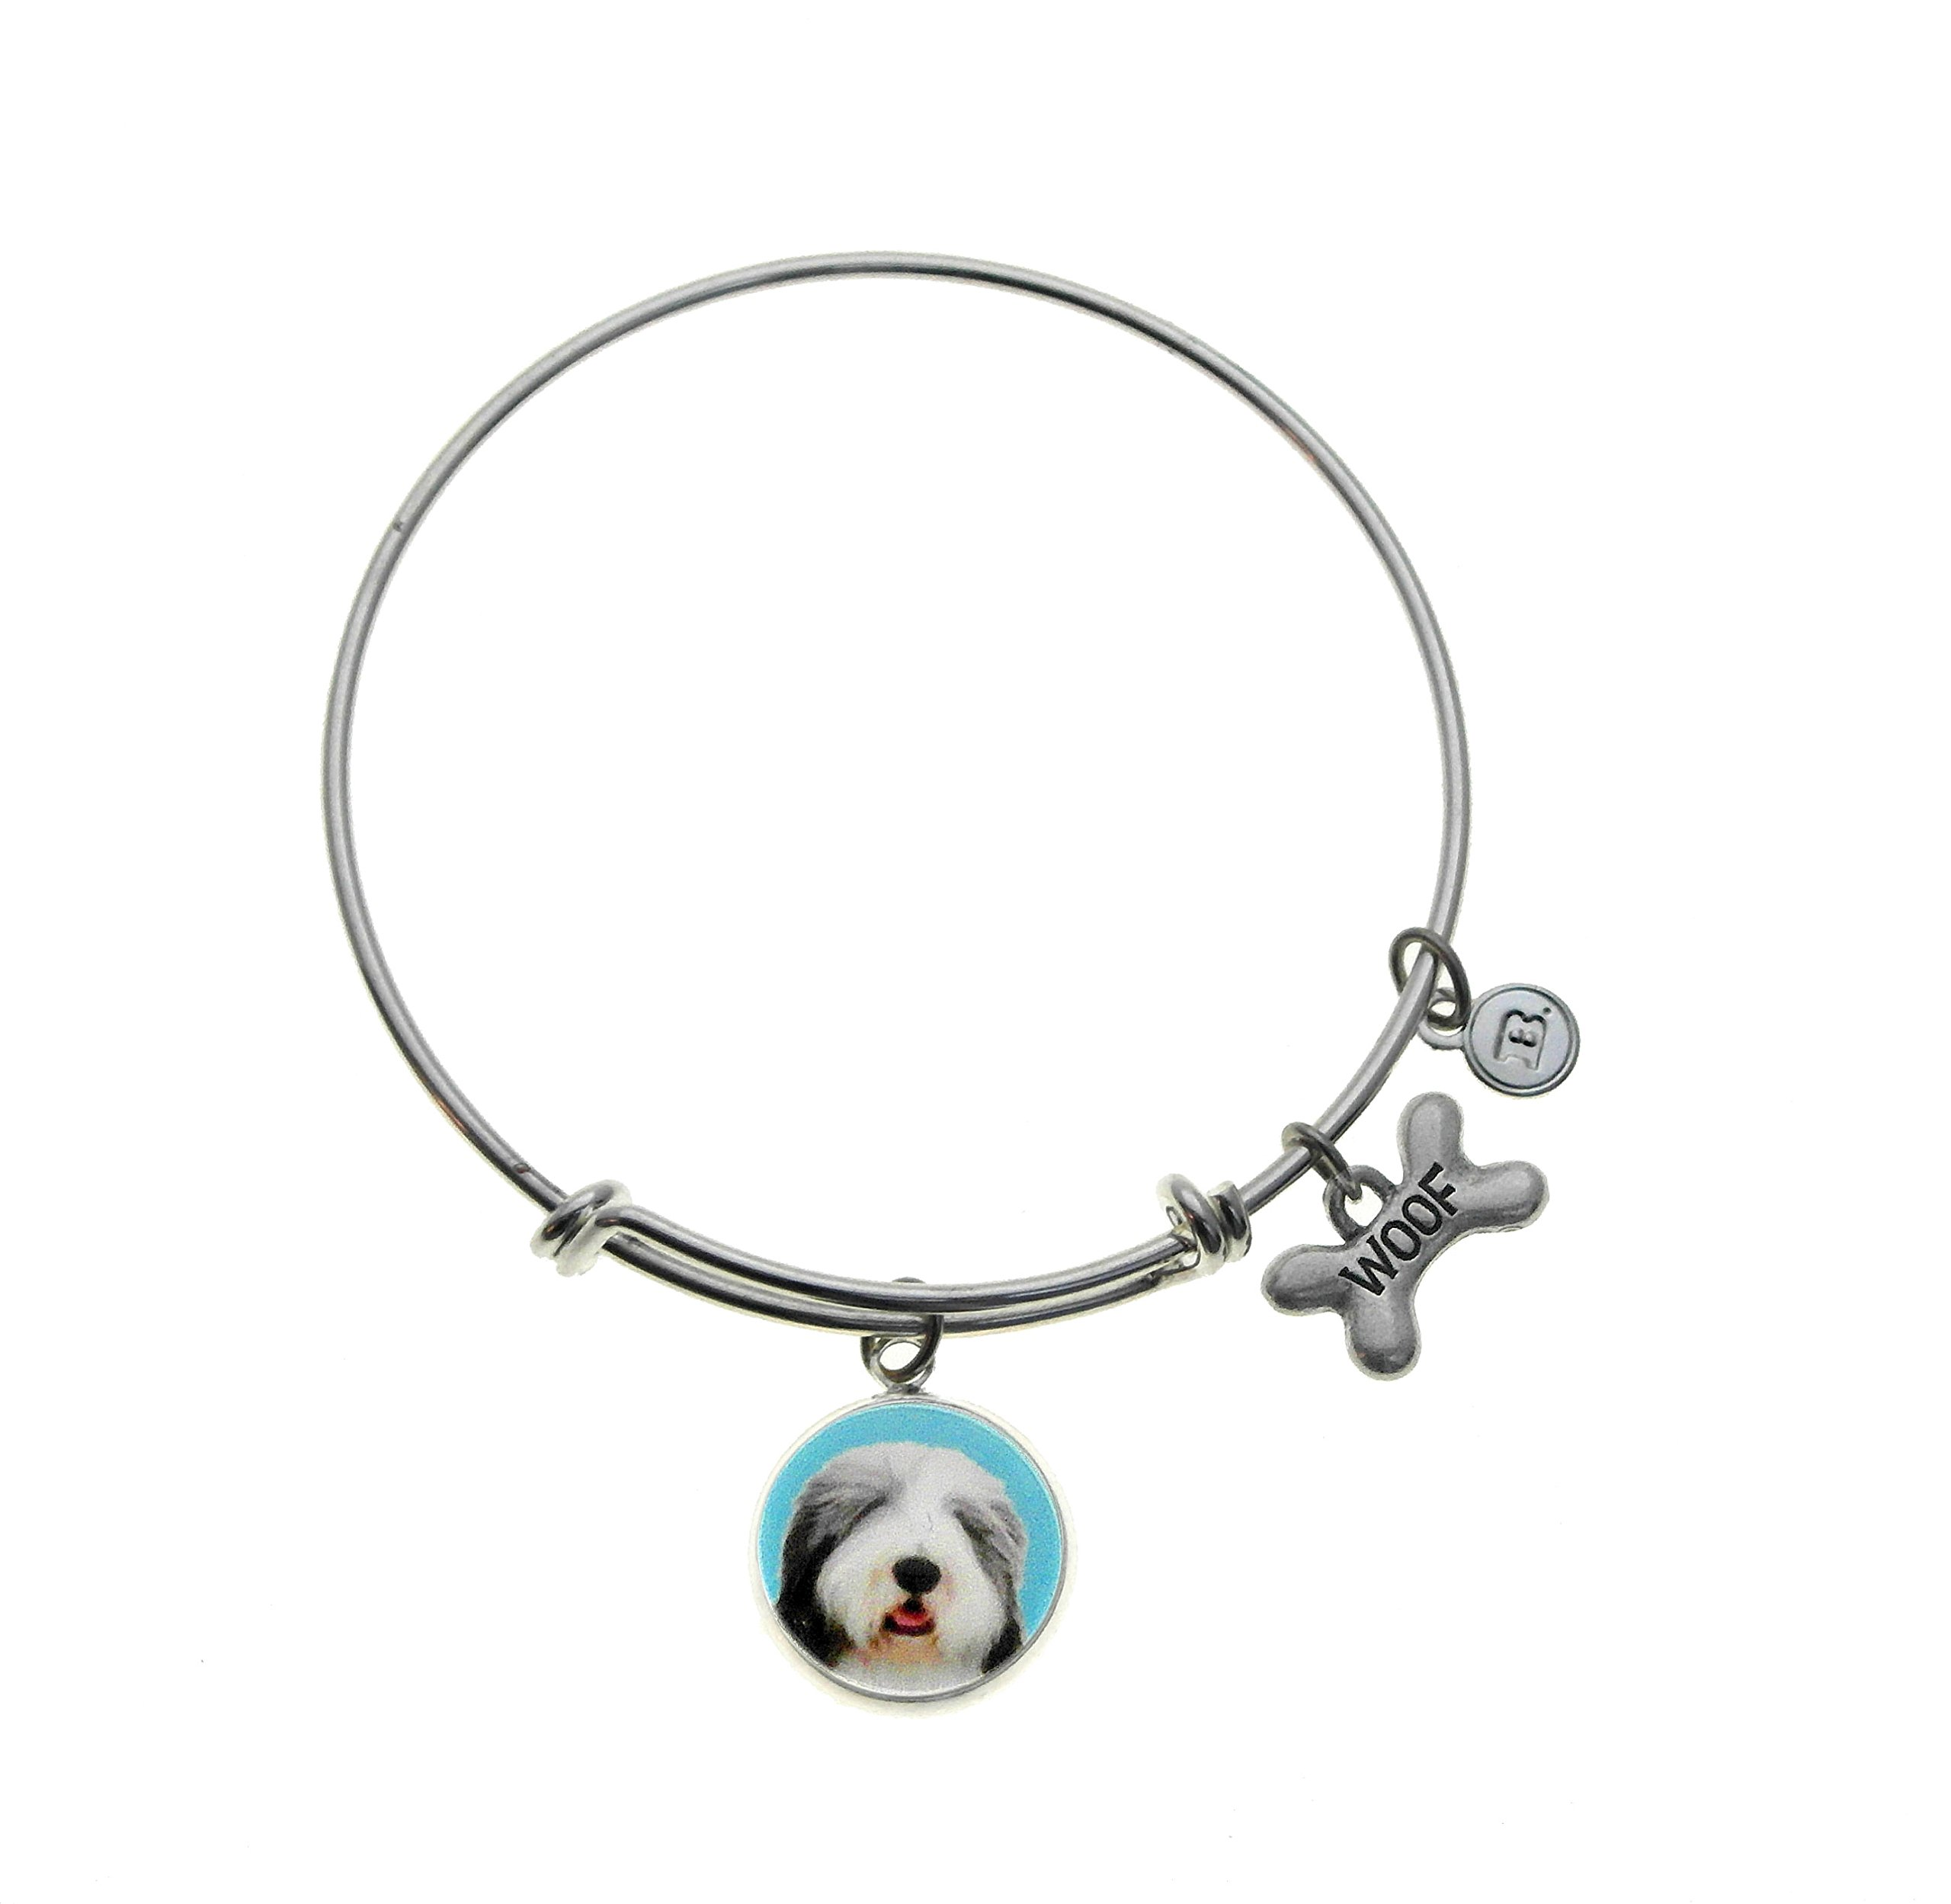 Top Dogs Bearded Collie Charm Silver Plated Adjustable Bangle Bracelet